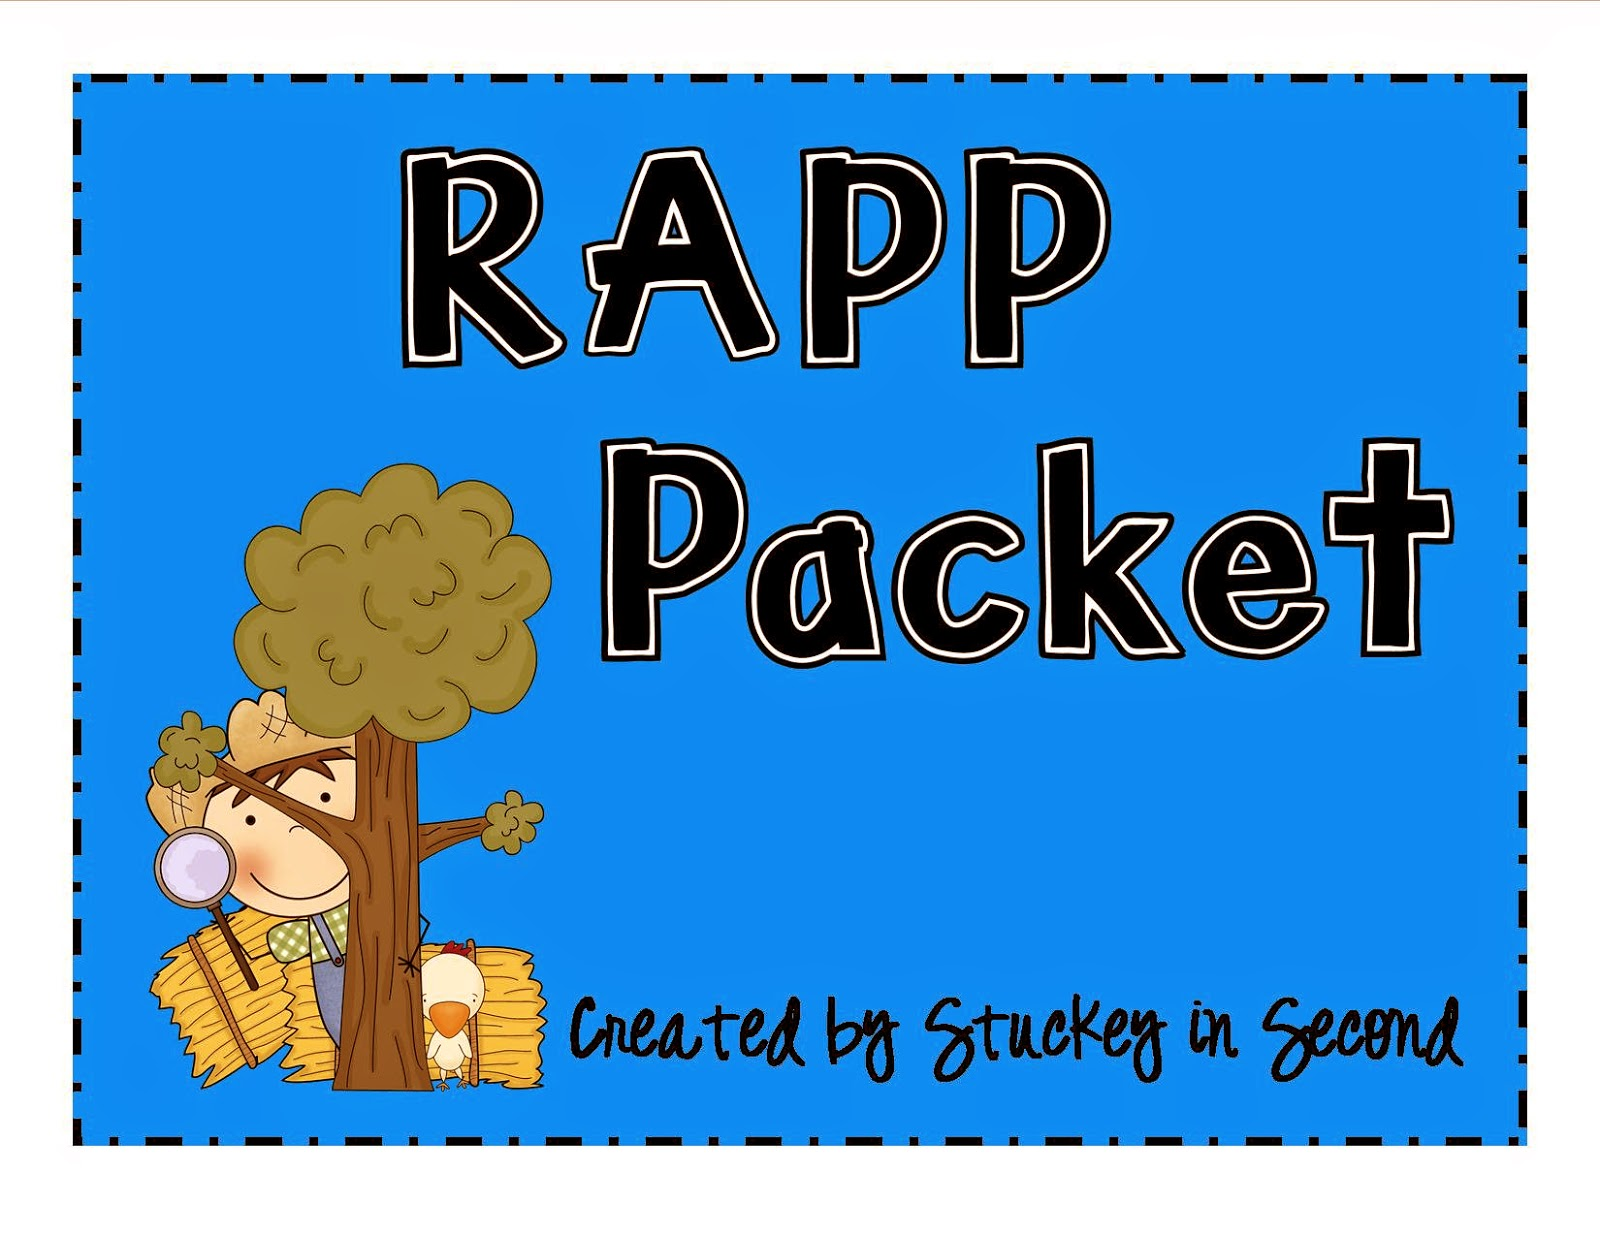 http://www.teacherspayteachers.com/Product/RAPP-Detective-Packet-353860